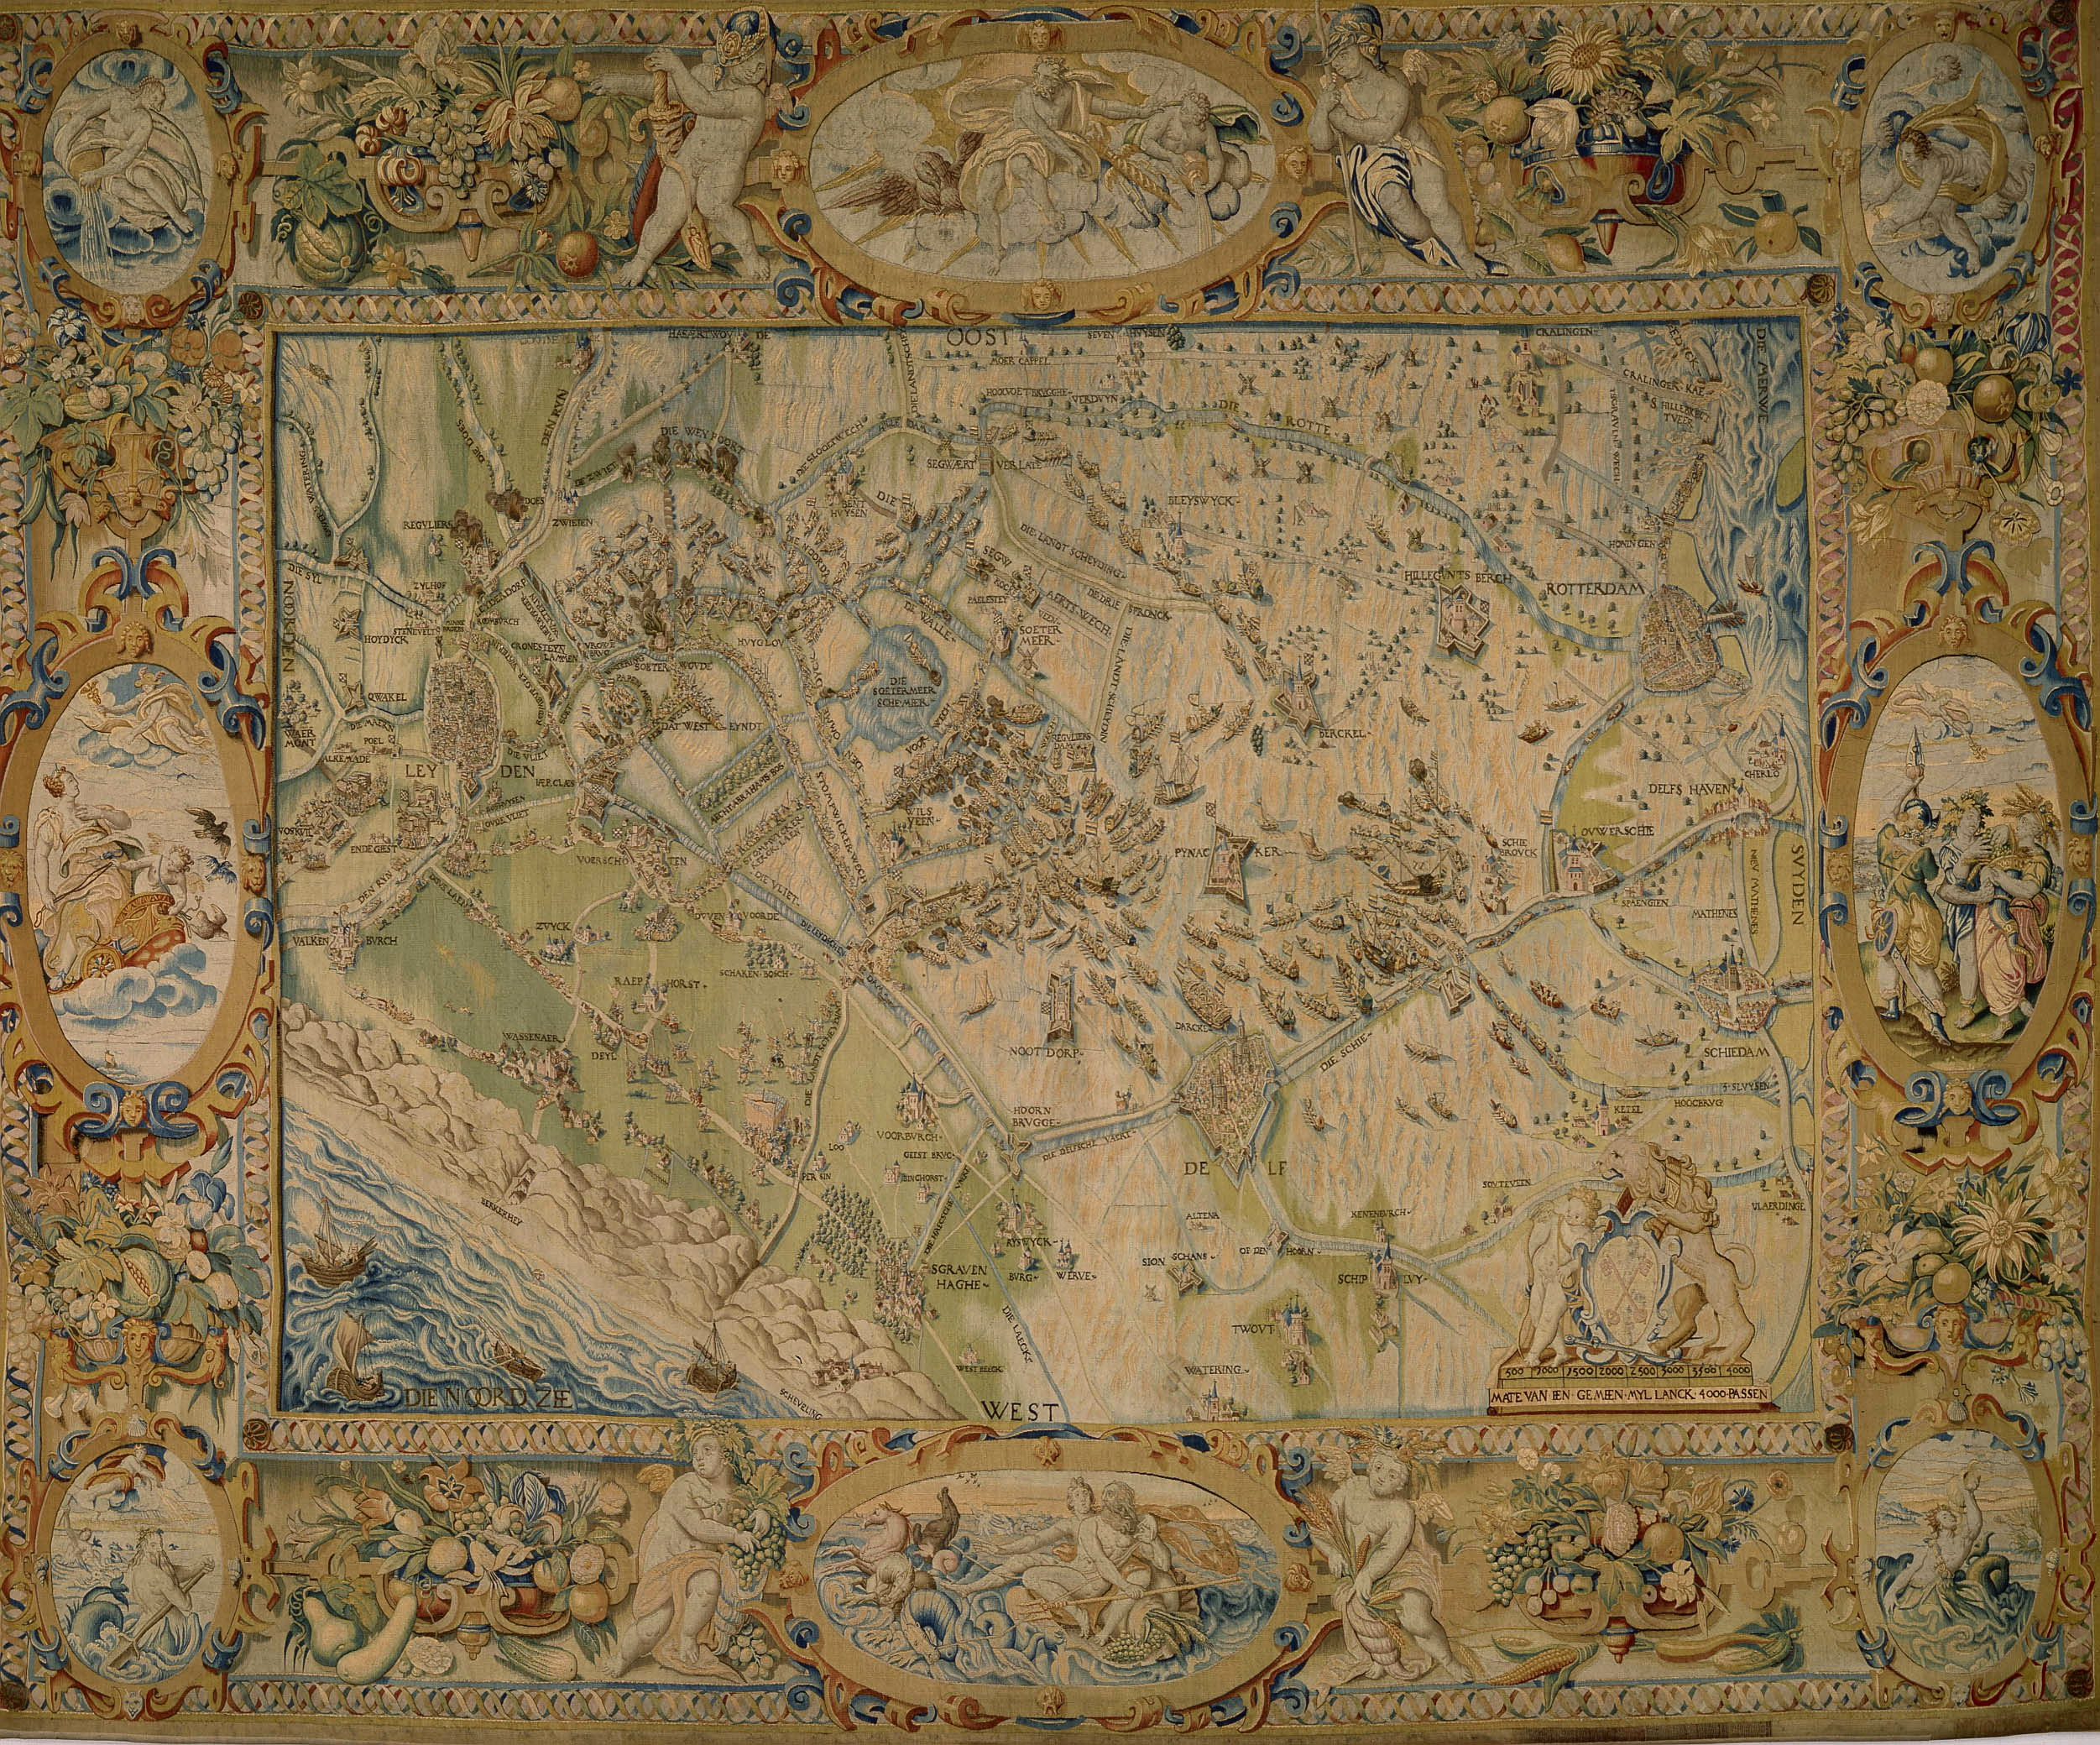 Fig. 3 Joost Jansz Lanckaert, Tapestry depicting the relief of Leiden, 1587-89Museum De Lakenhal, Leiden, inv. no. 3358